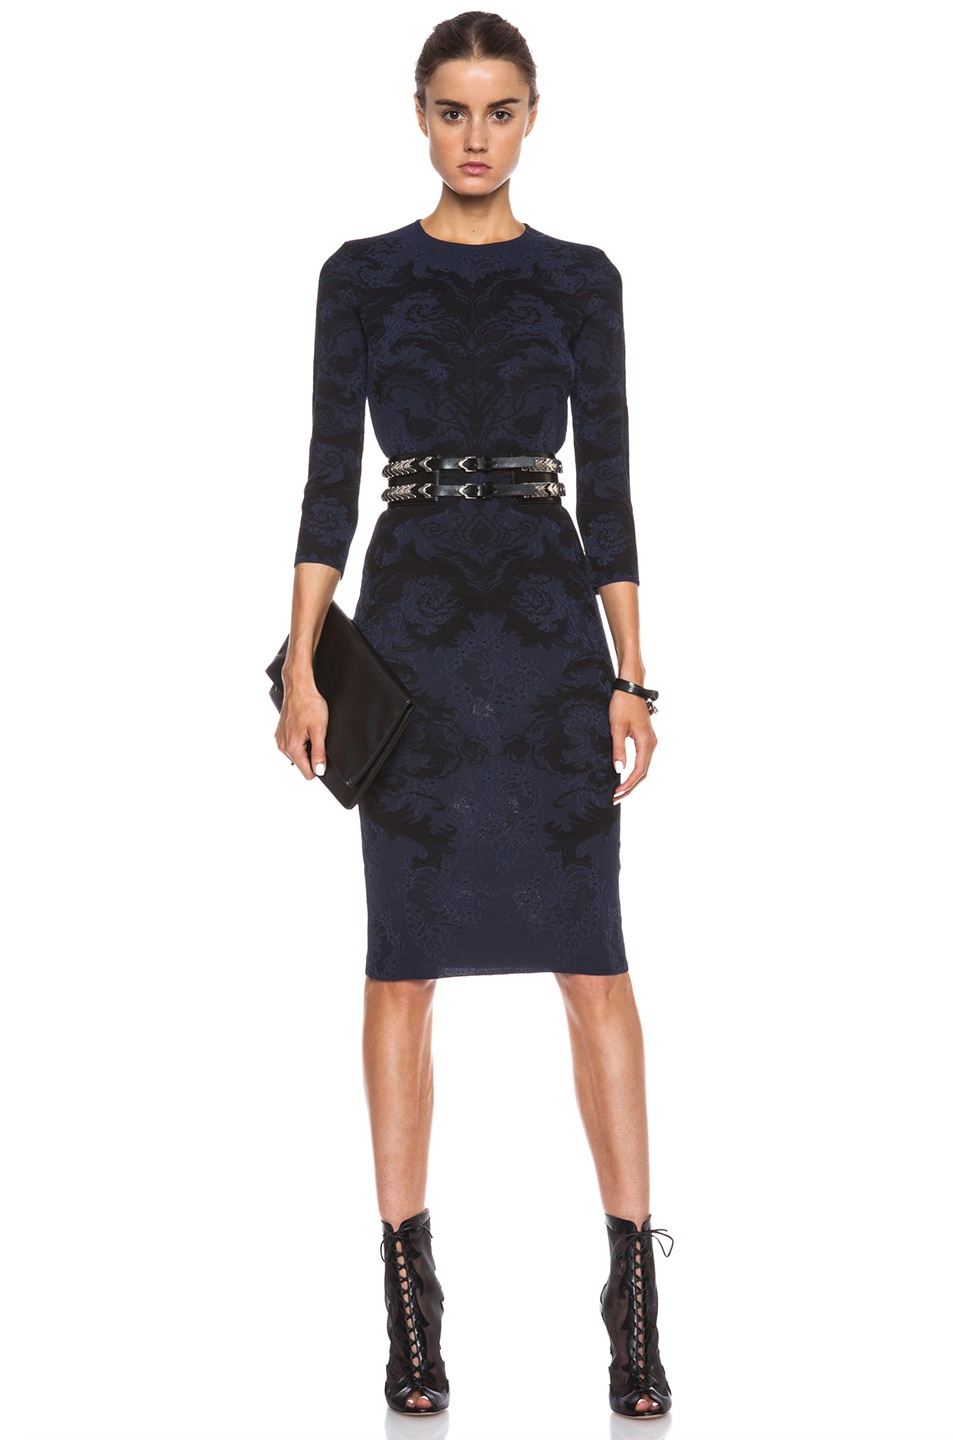 Image 1 of Alexander McQueen Baroque Spine Lace Dress in Navy & Black